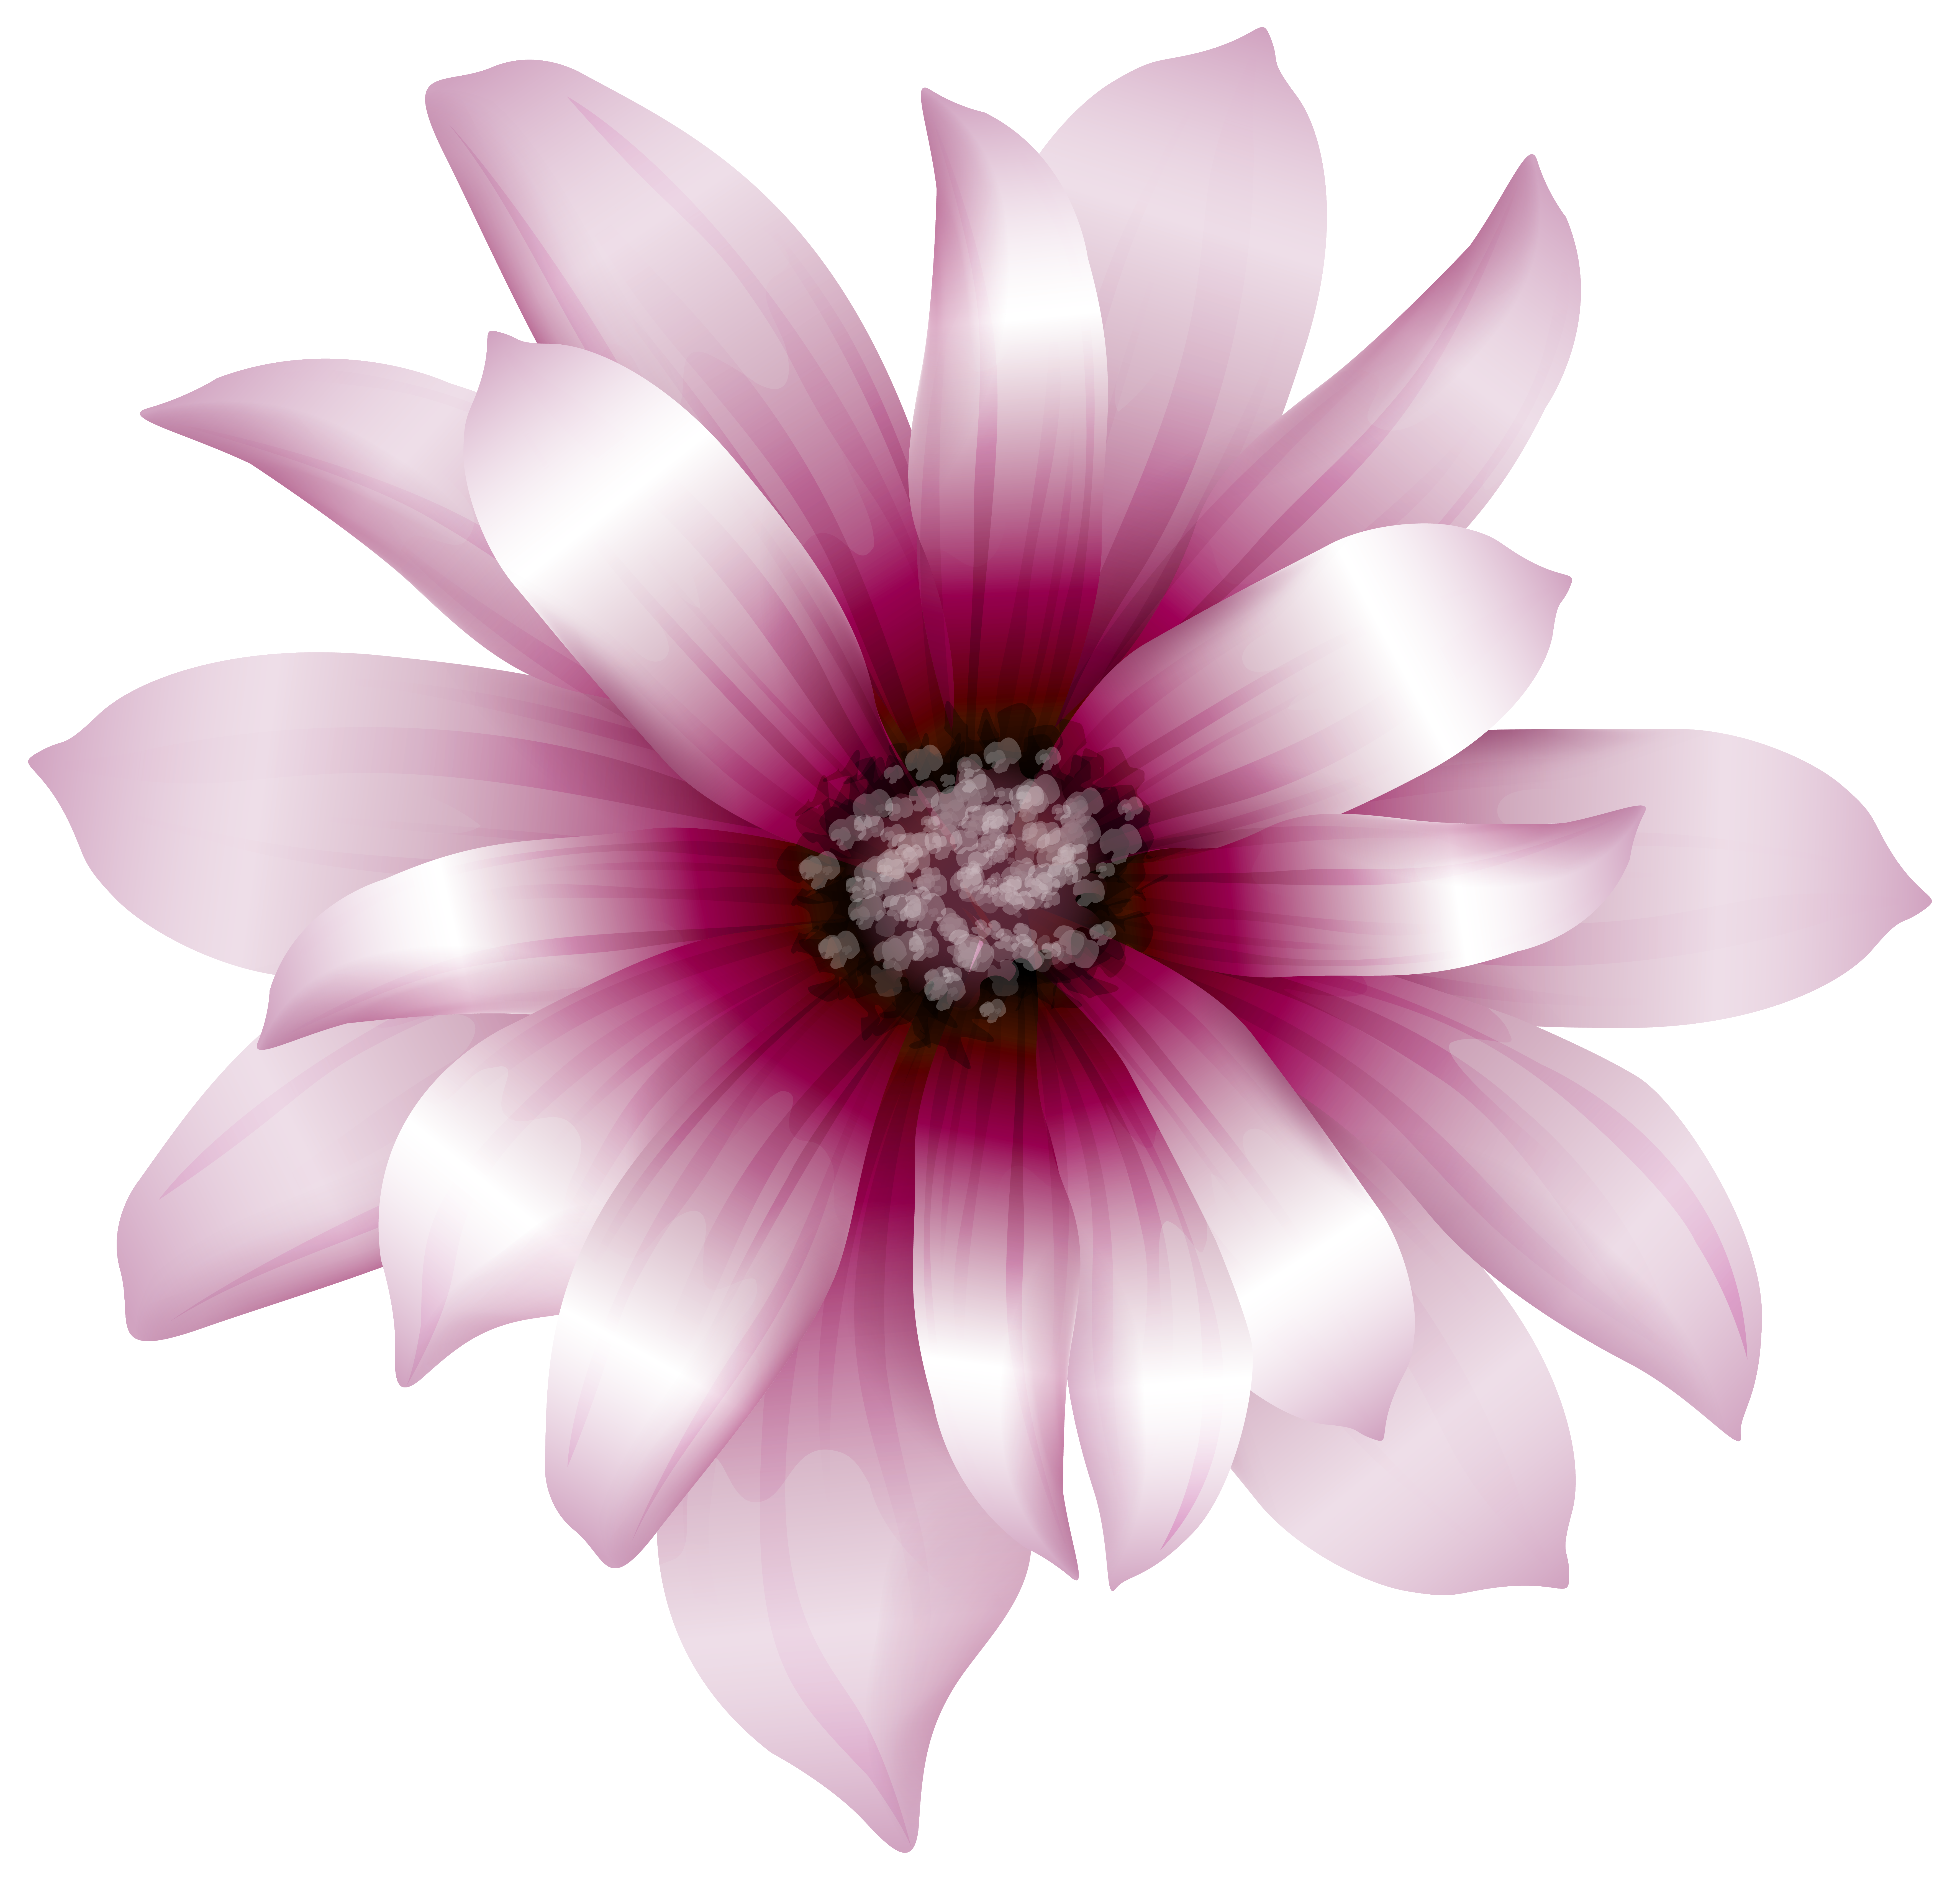 Flower clipart png free download best flower clipart png on 7076x6786 large pink flower transparent png clip art imageu200b gallery mightylinksfo